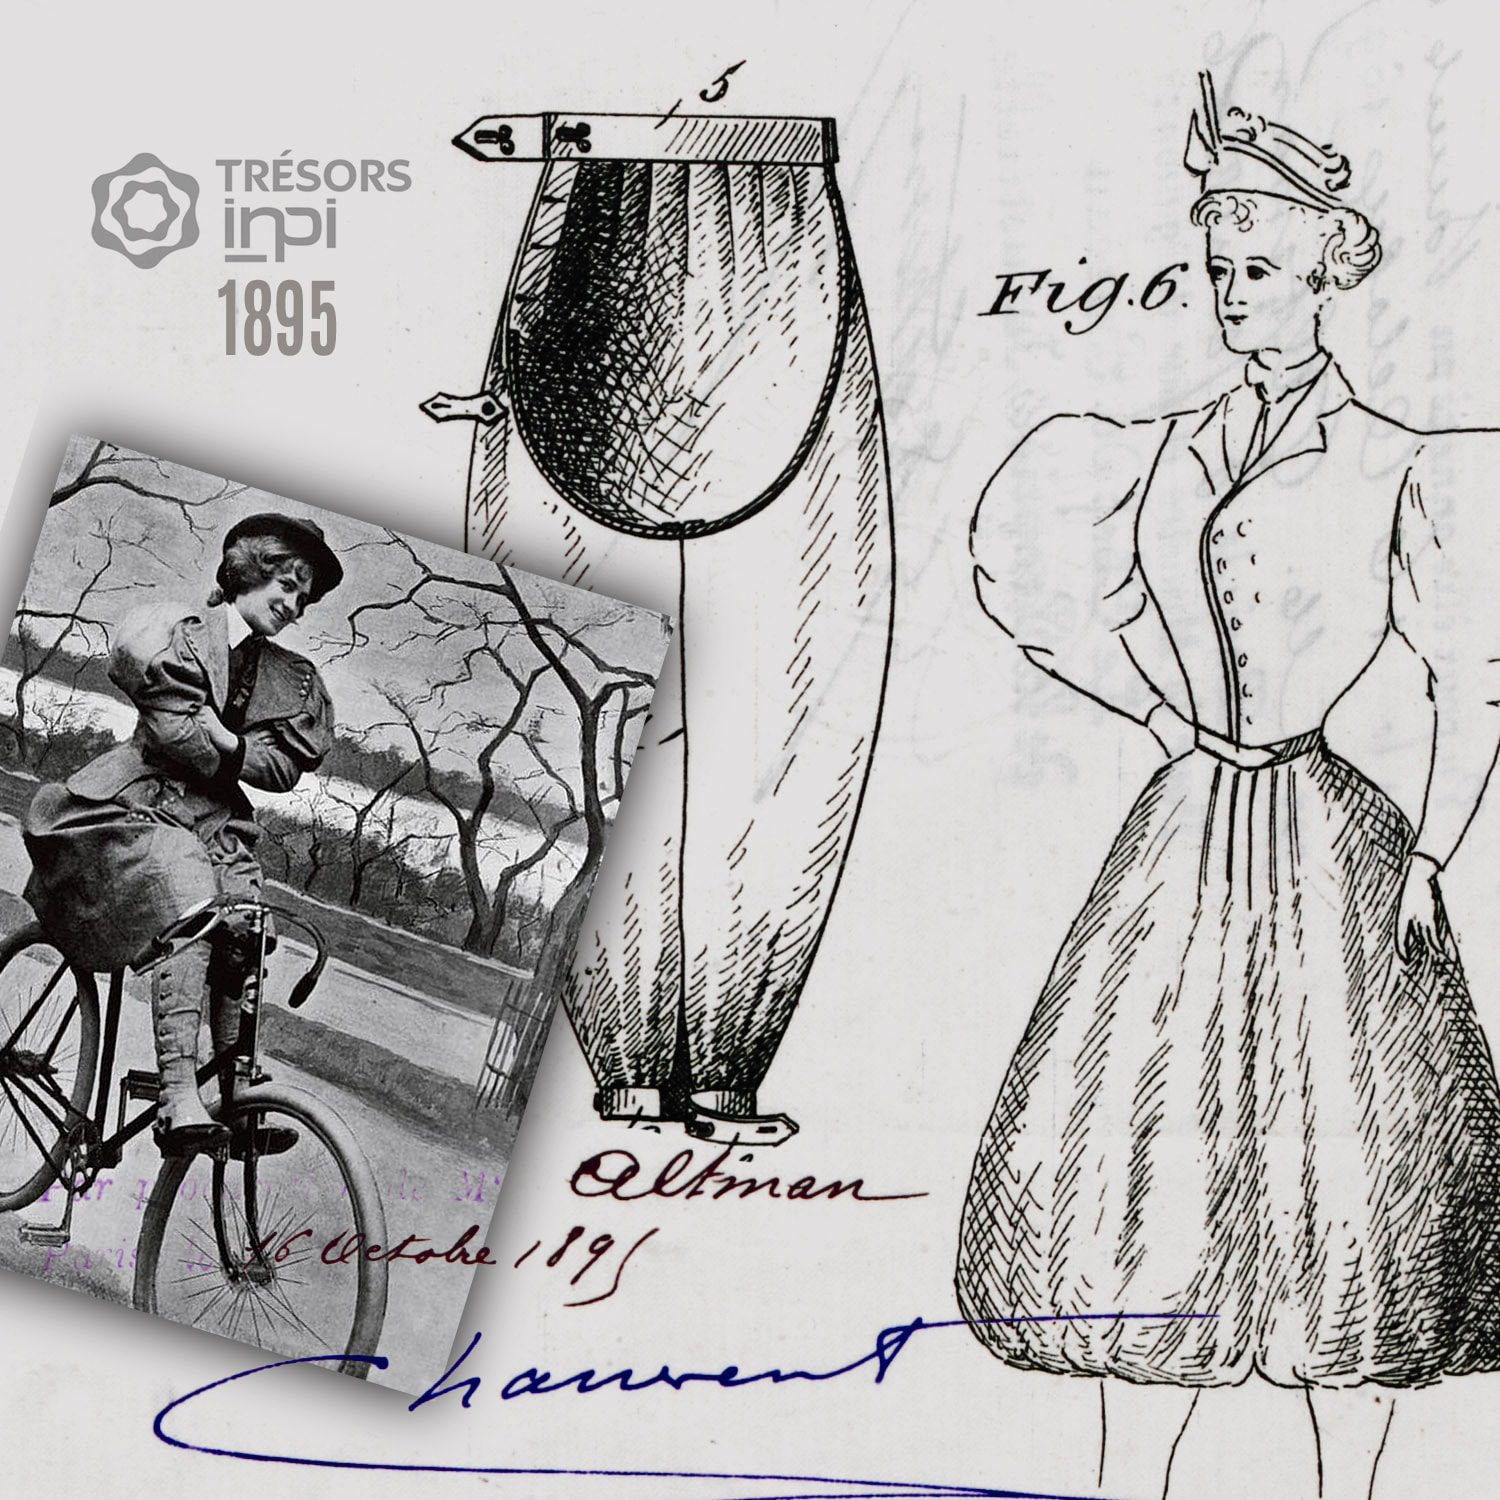 Benjamin Altman 1895 puffy breeches for cyclists invention - INPI archives